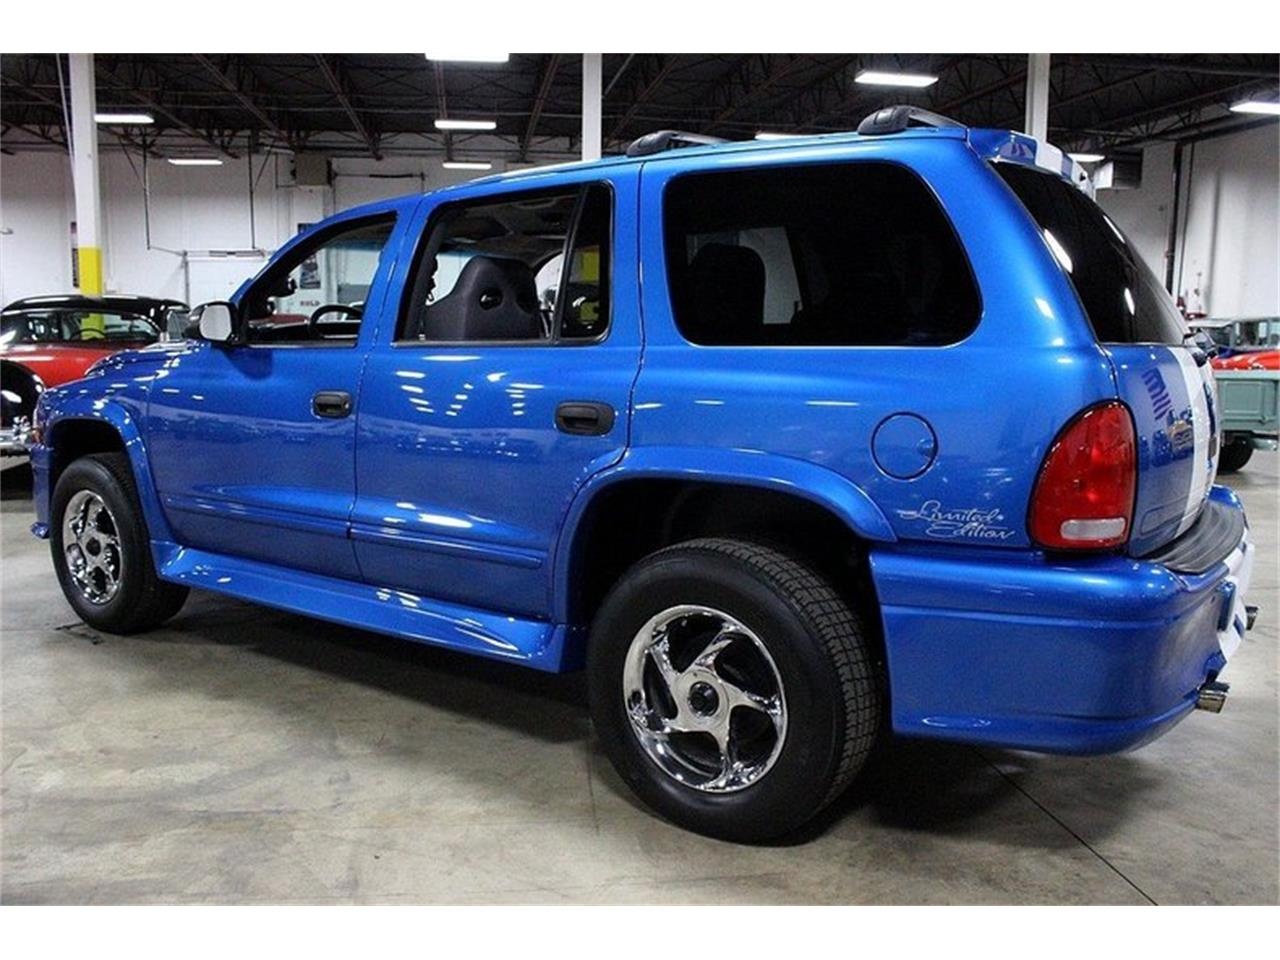 Large Picture of '99 Durango Shelby SP-360 - $31,900.00 Offered by GR Auto Gallery - MB1Y